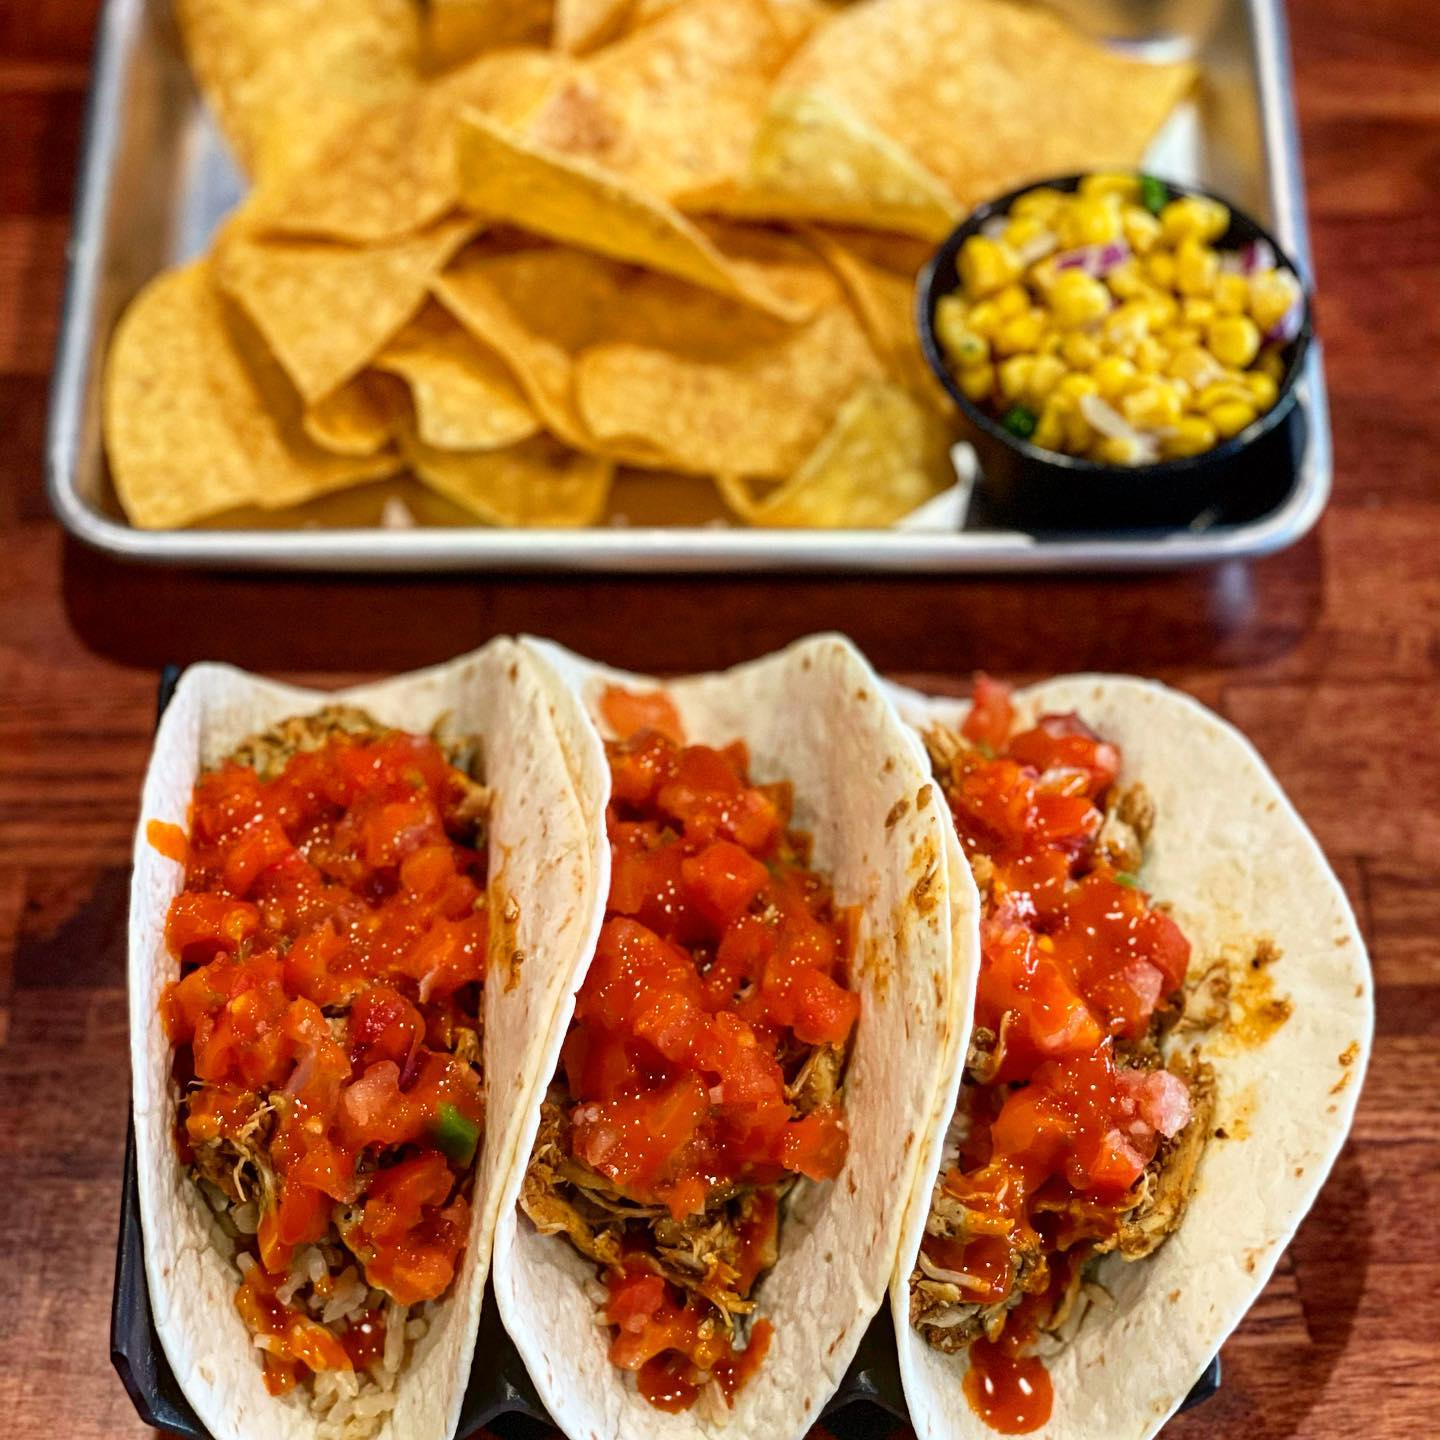 3 tacos with a side of chips and corn salsa